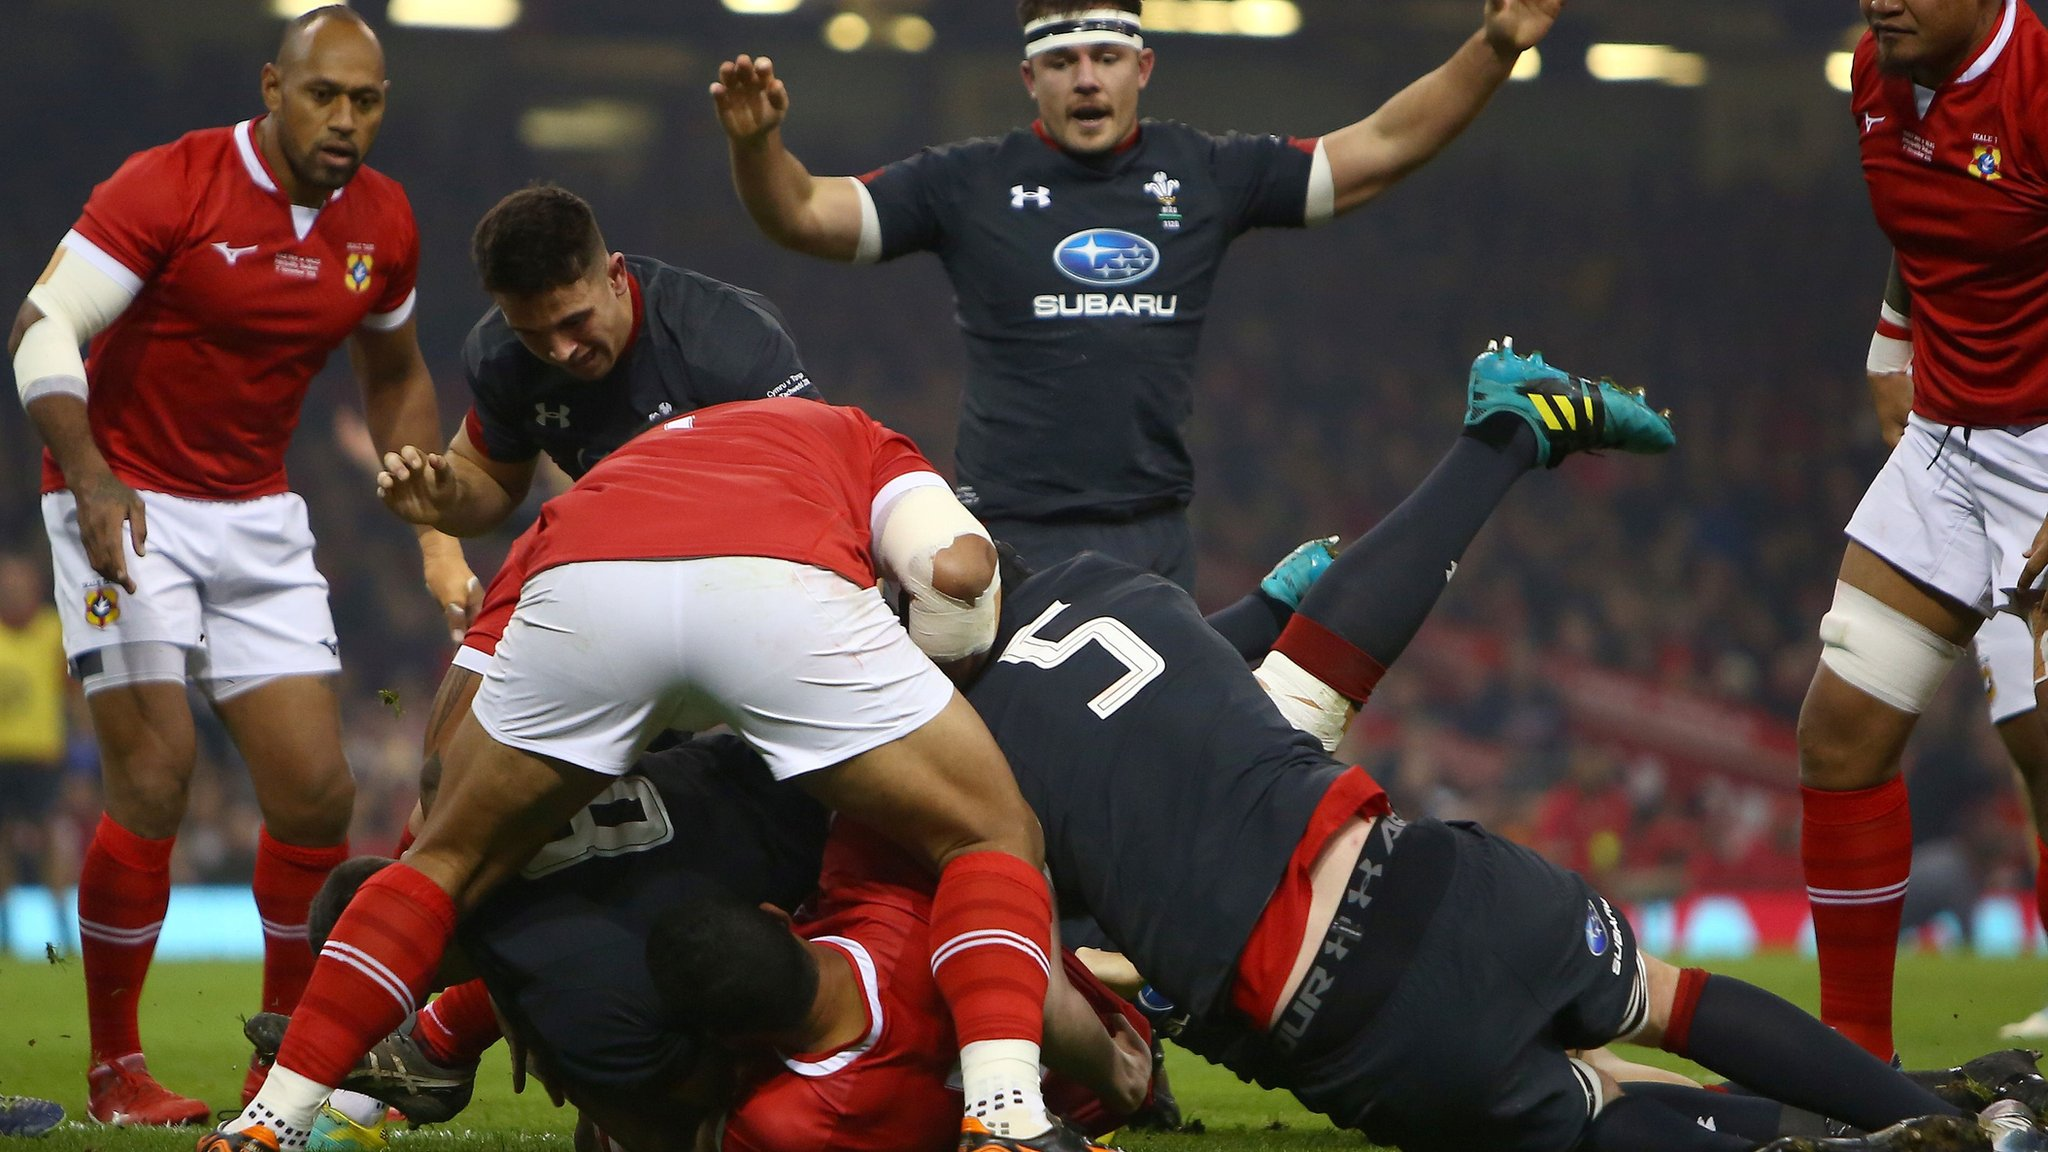 Wales v Tonga: Wales opening scoring with penalty try